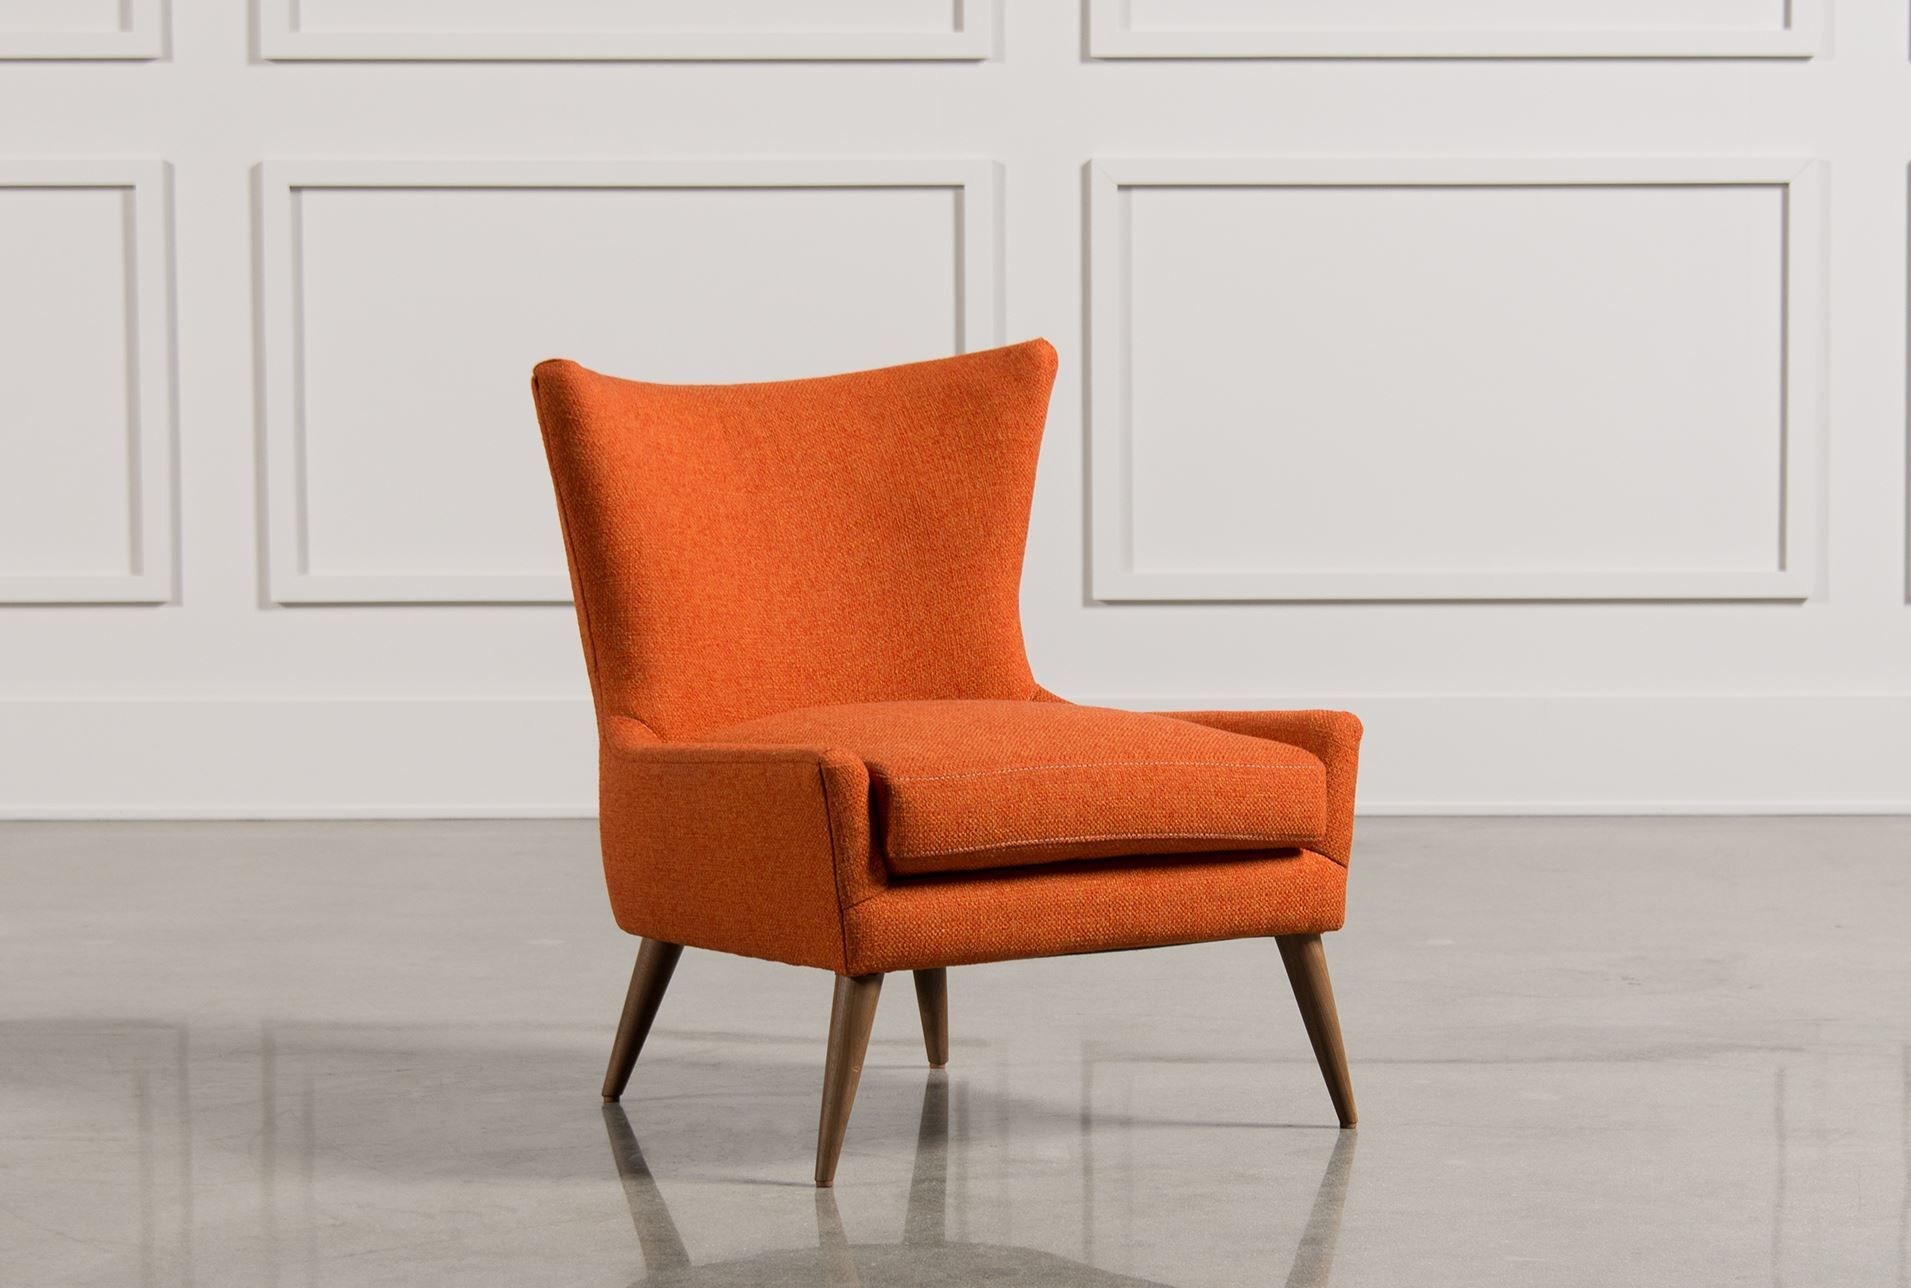 Orange Accent Chairs With Arms Dining Room Chairs Modern Accent